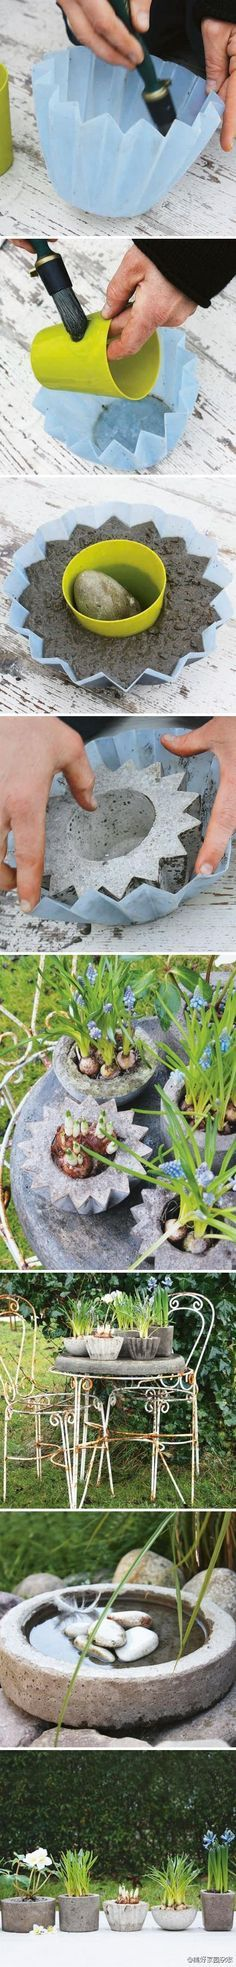 Concrete casting by joybx: something to try this summer with printed forms/molds DIY